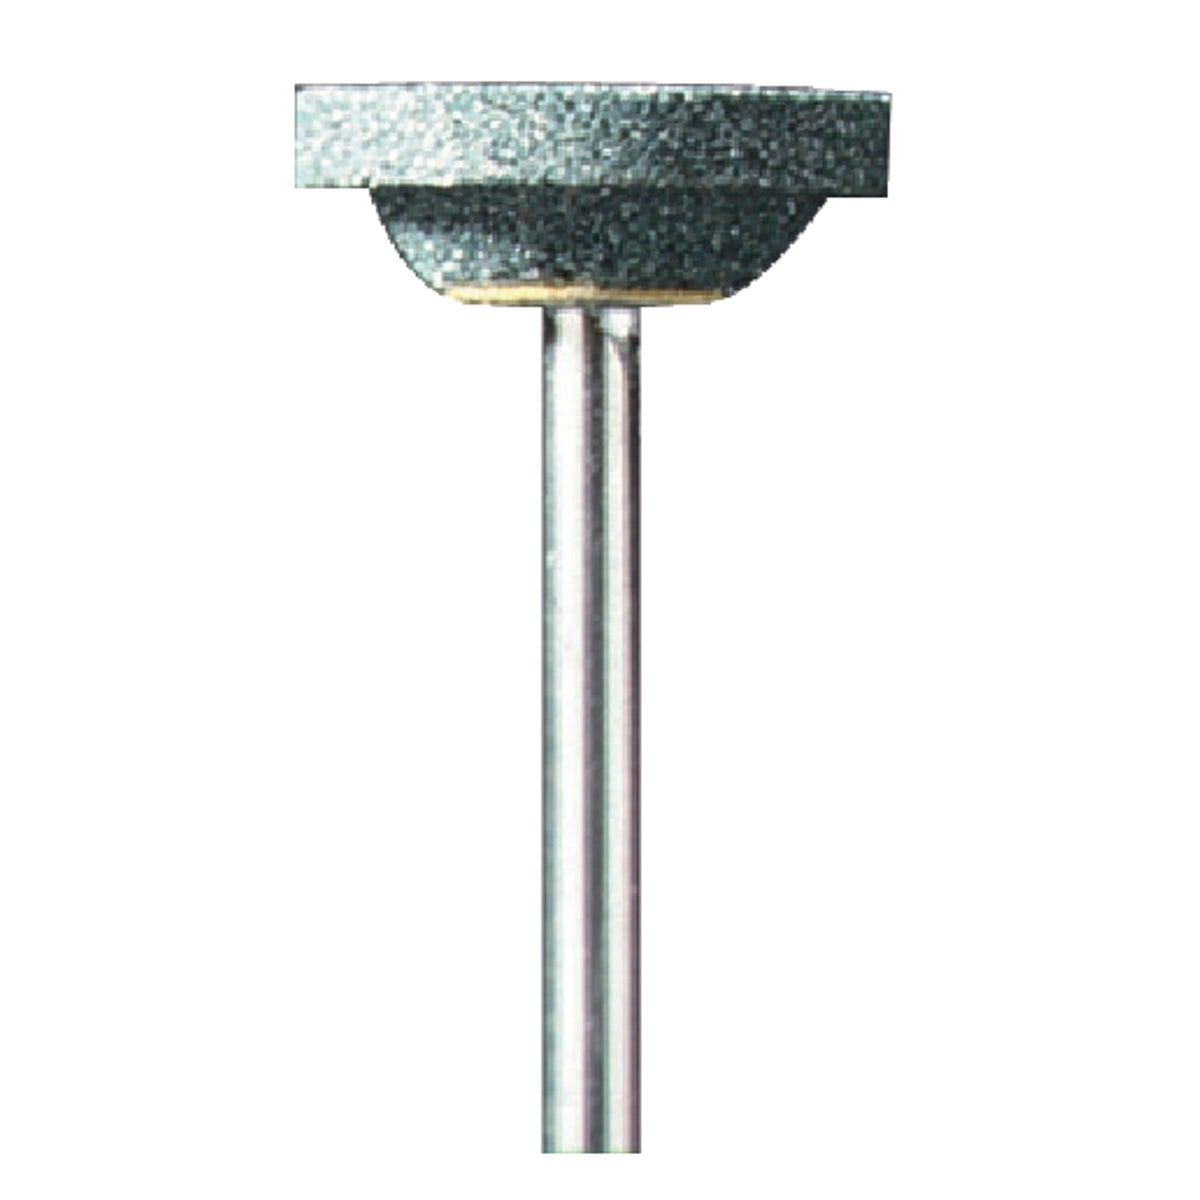 CARBIDE GRINDING STONE - 85422 by Dremel Mfg Co